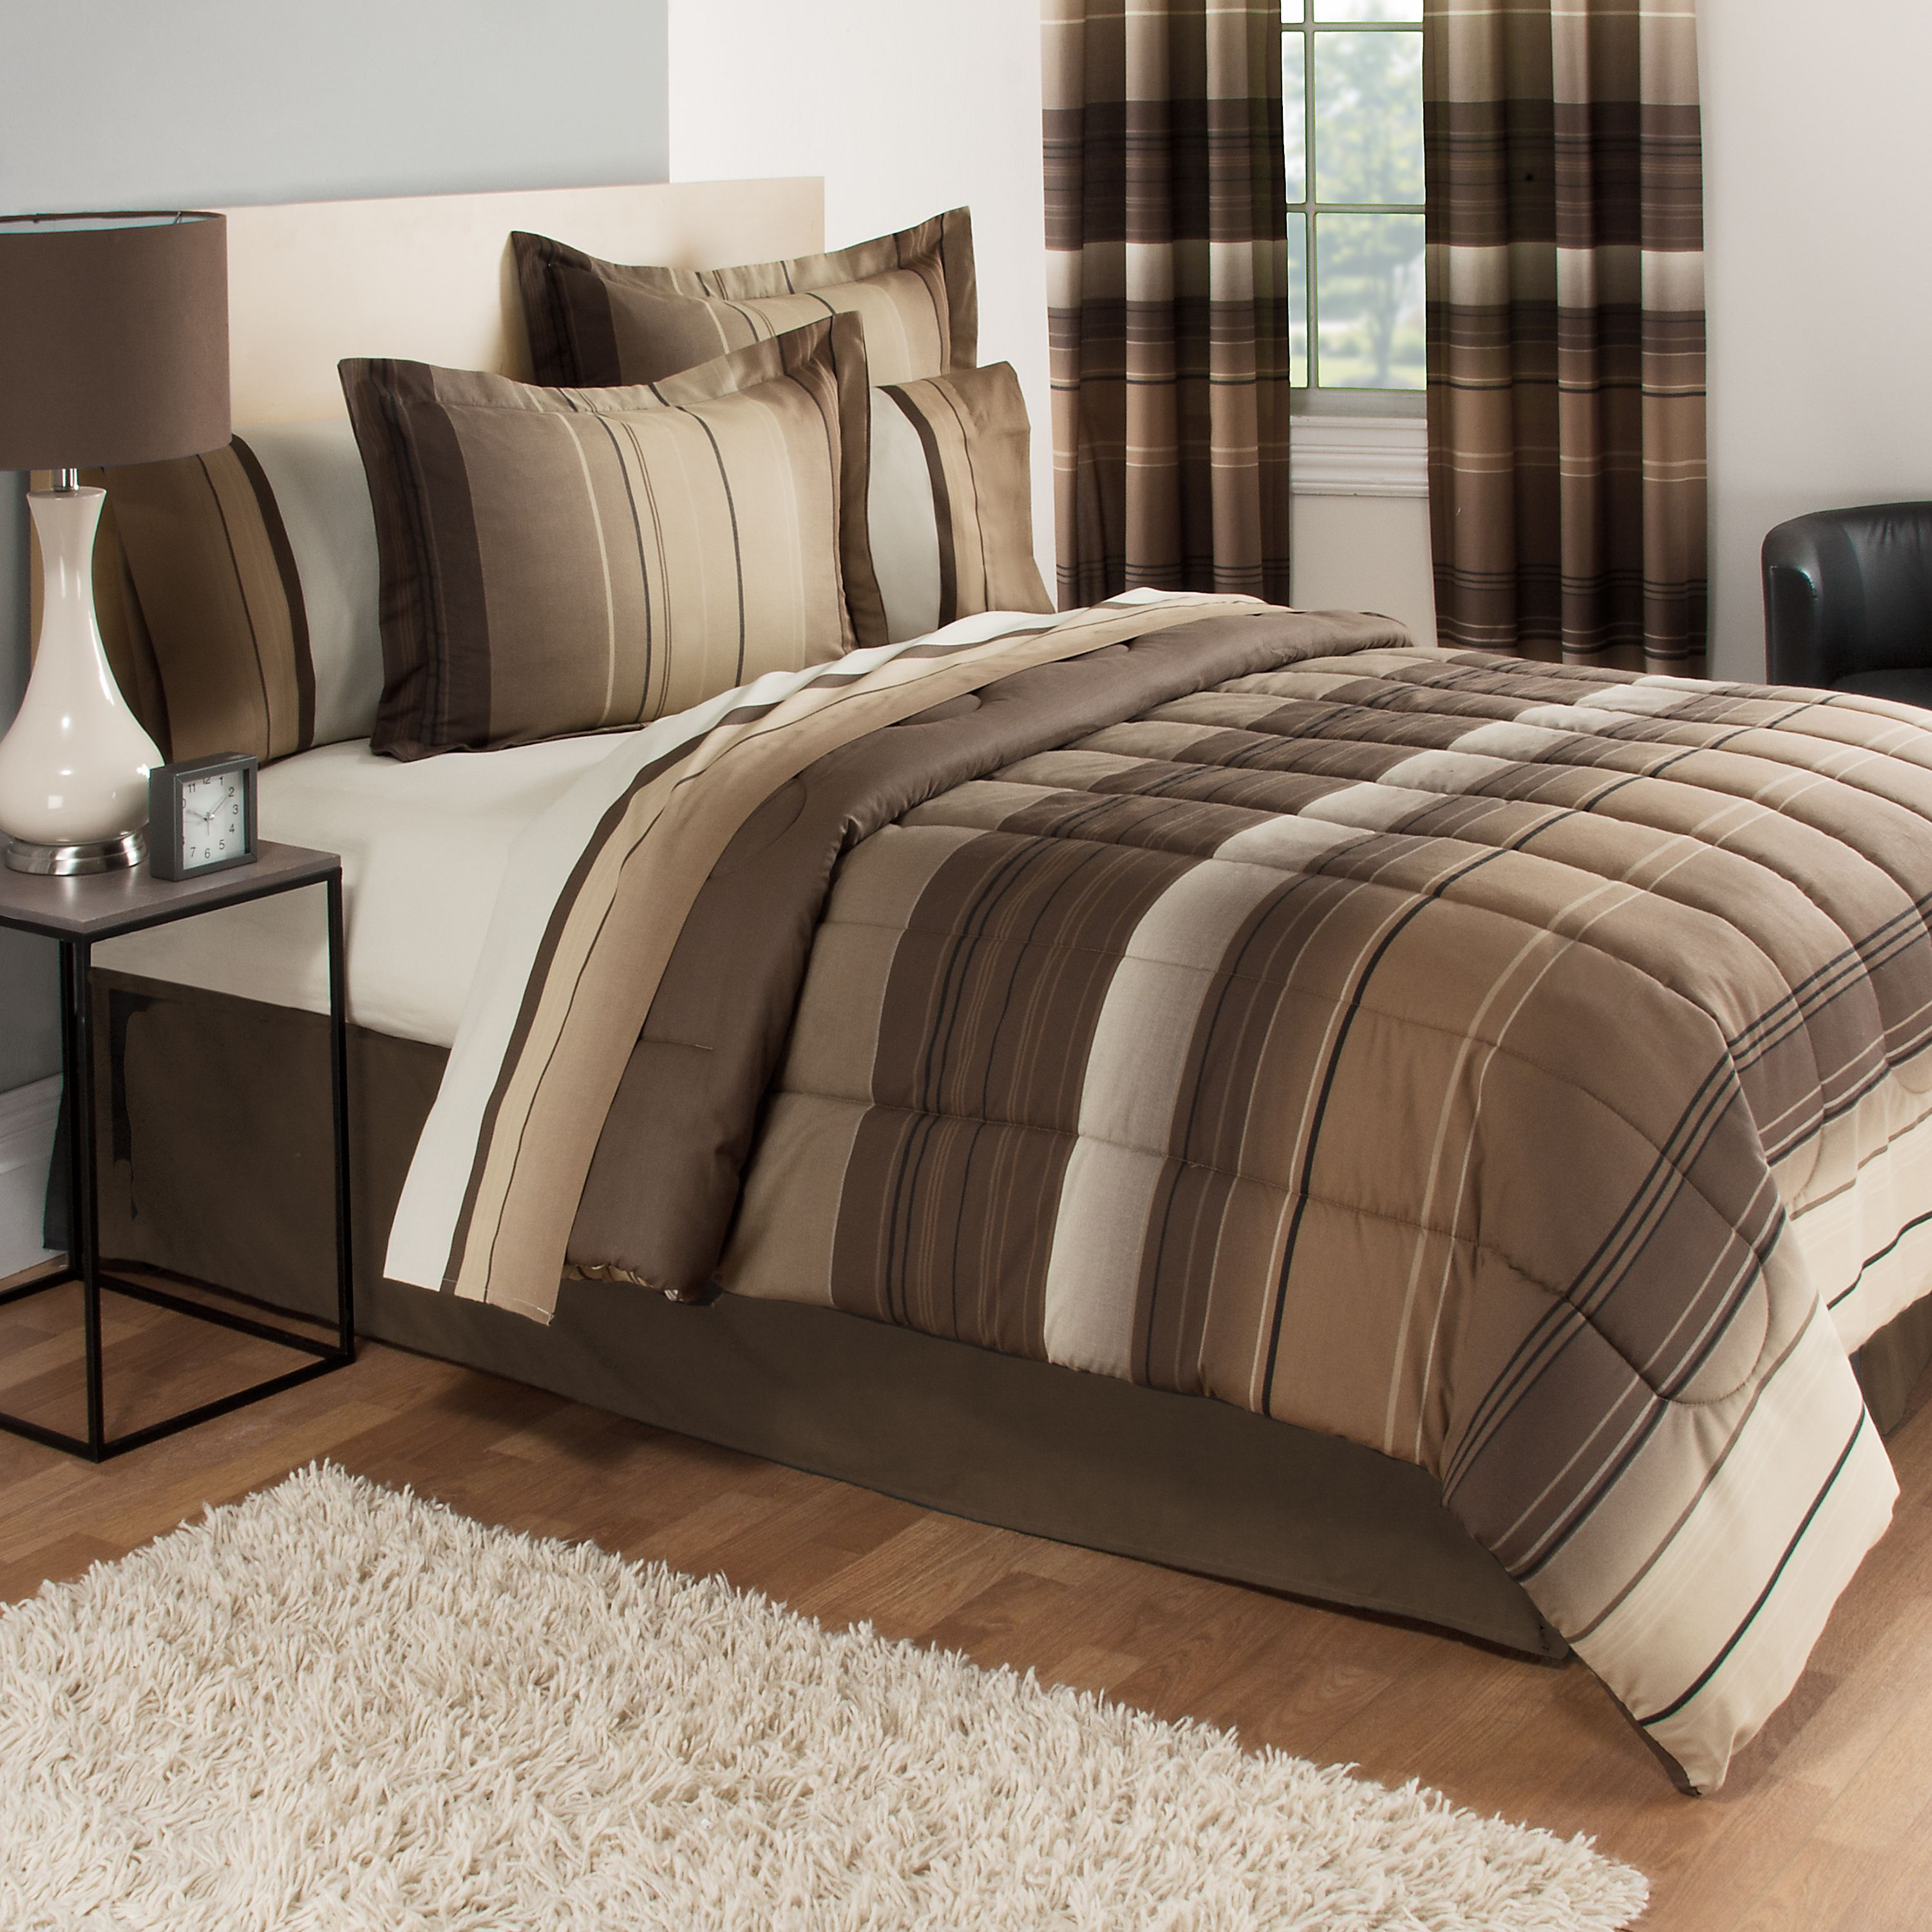 Attirant Mainstays Ombre Coordinated Bedding Set With Bedskirt Bed In A Bag